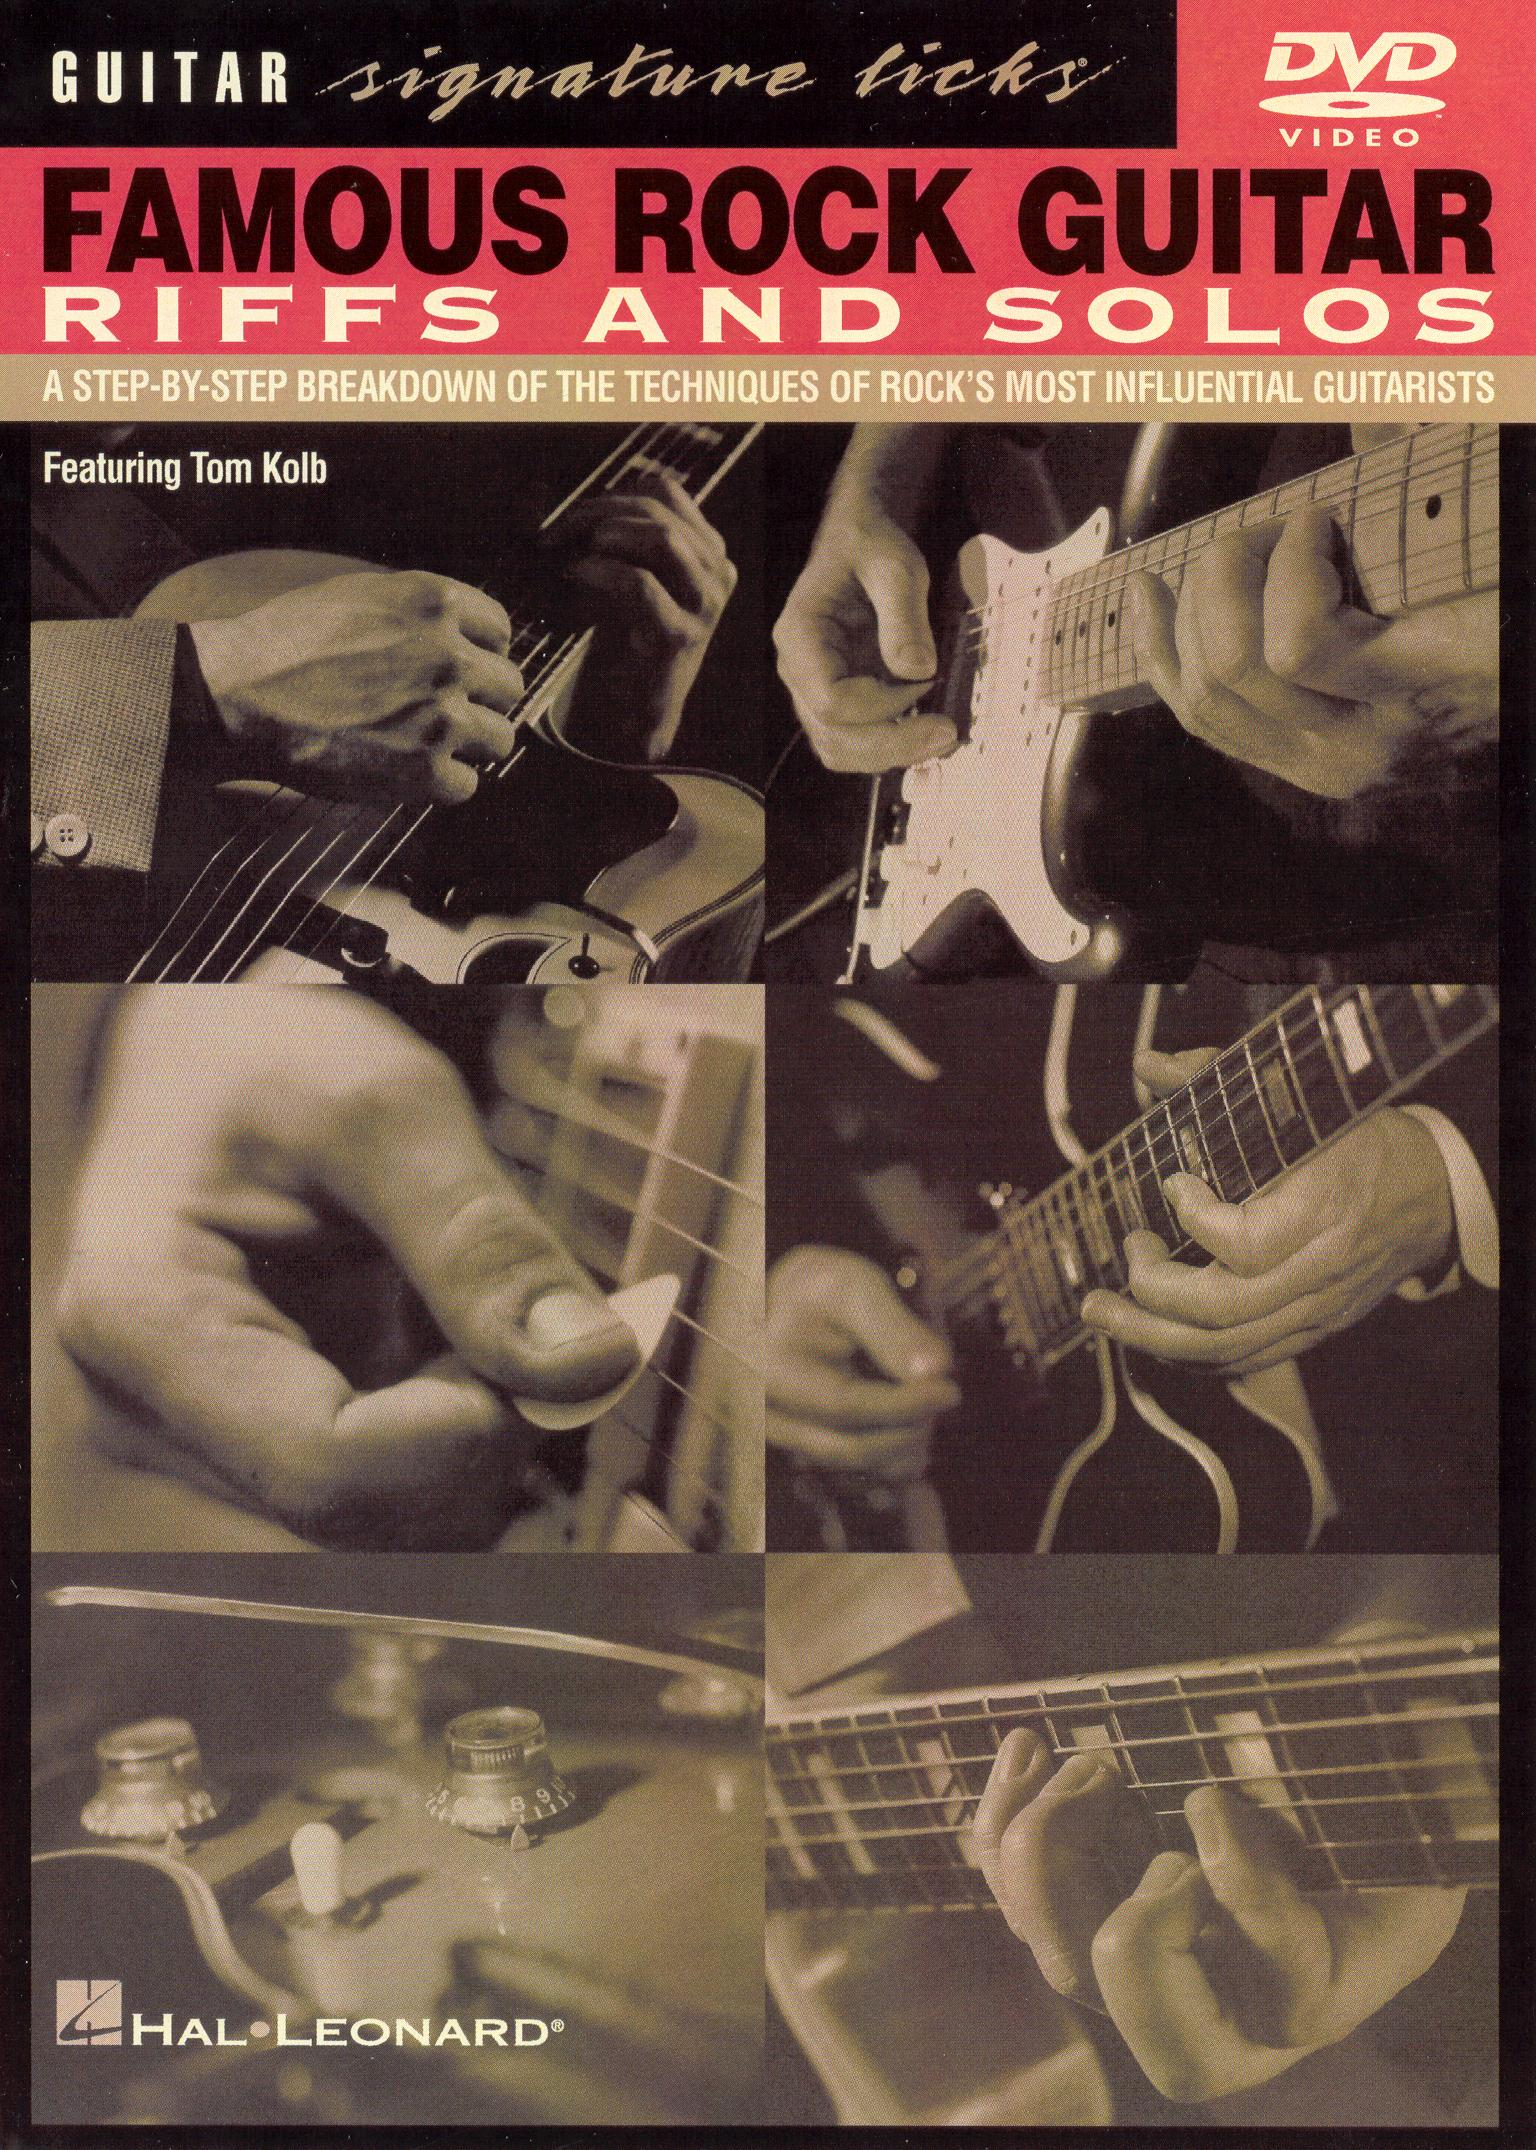 Guitar Signature Licks: Famous Rock Guitar Riffs and Solos